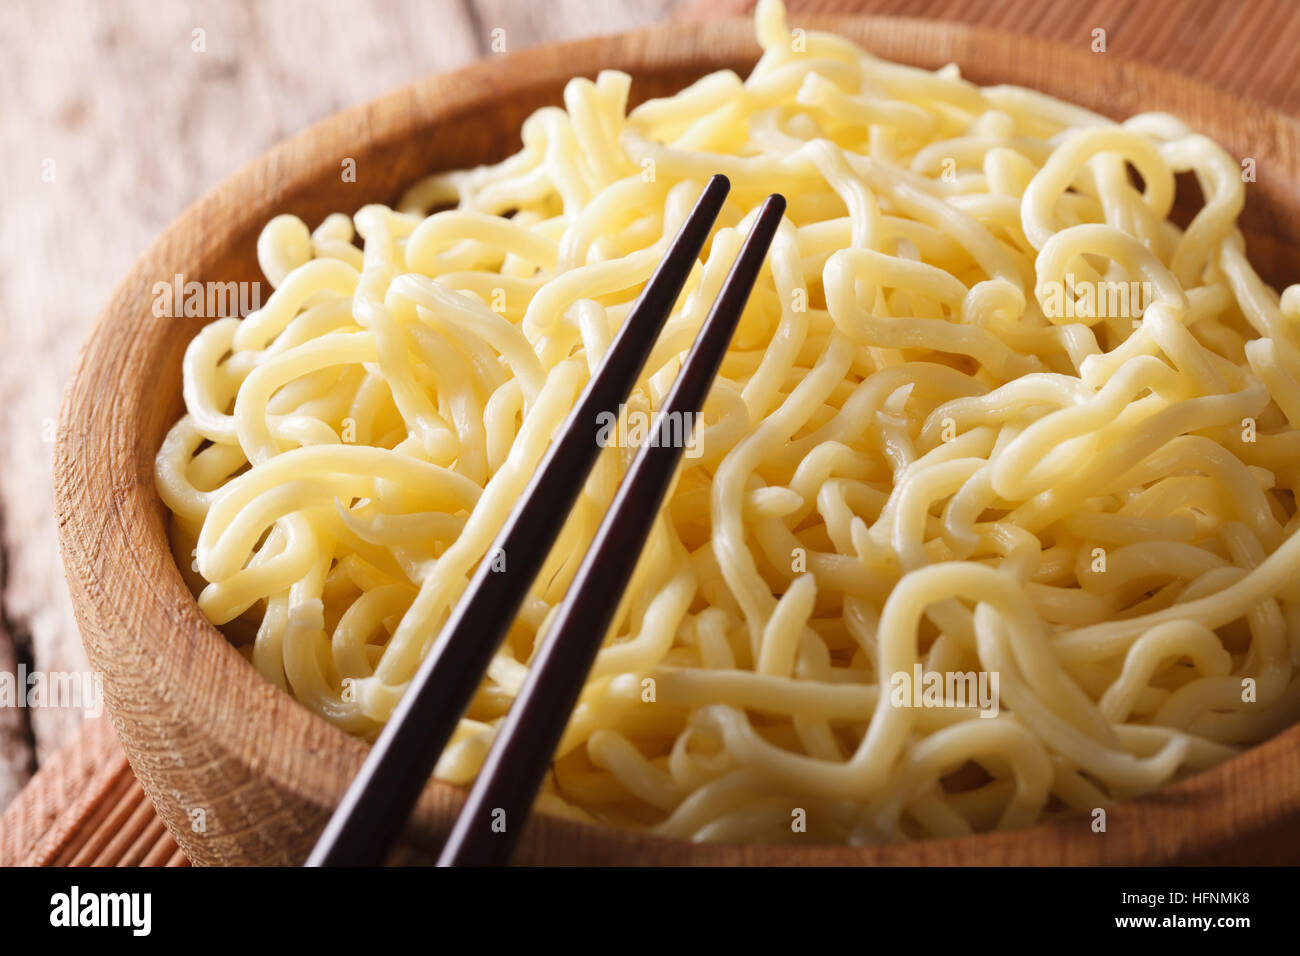 Traditional Asian ramen noodles in a wooden bowl macro. horizontal - Stock Image